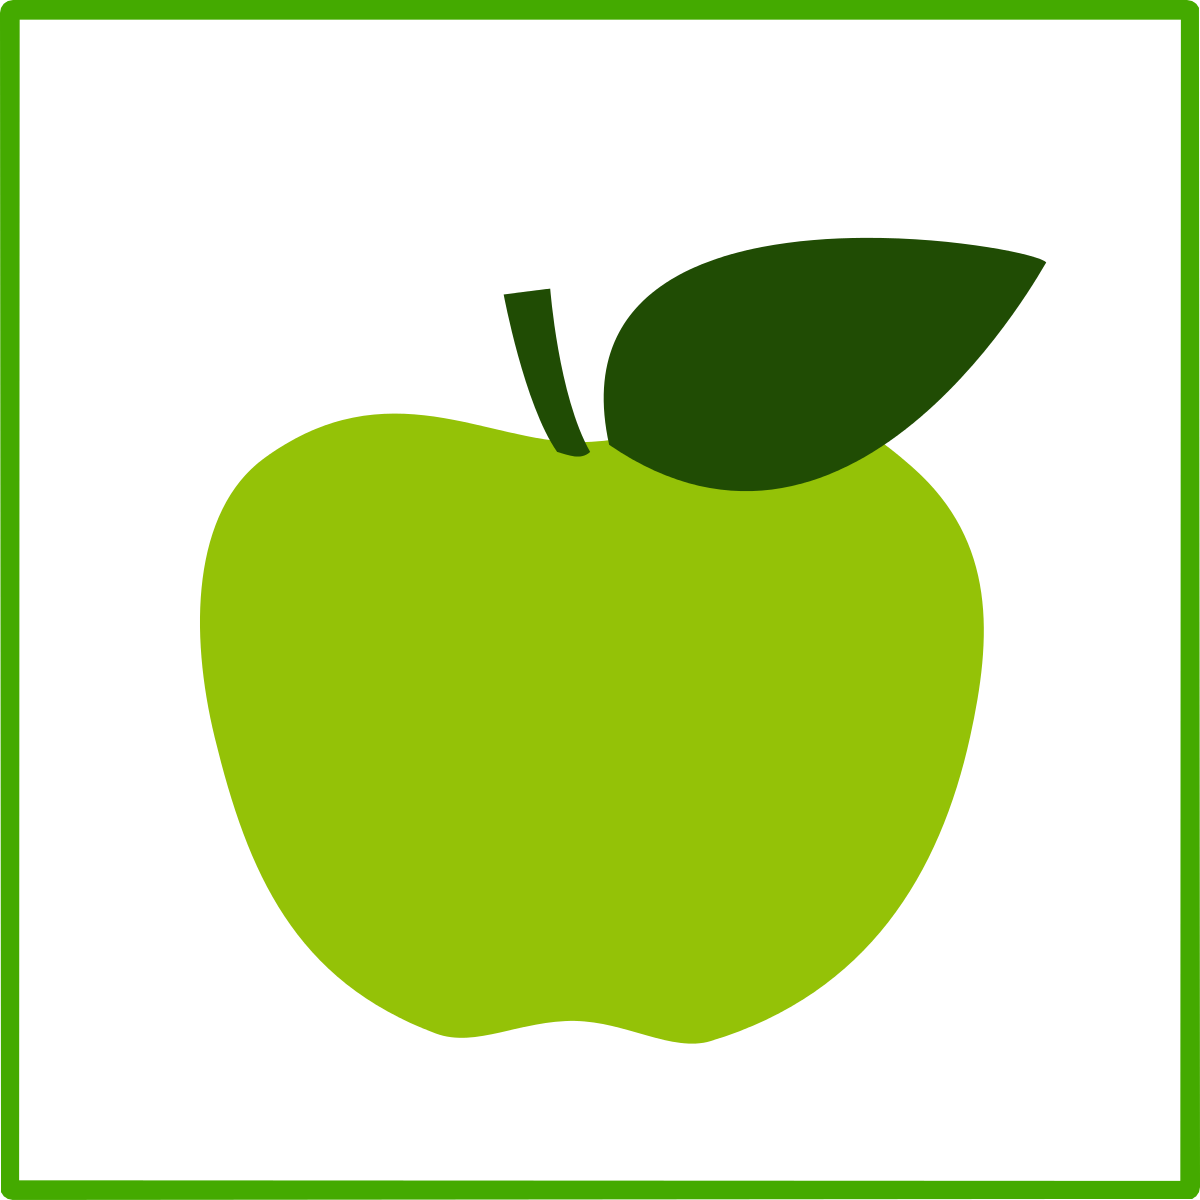 clipart apple pages - photo #47